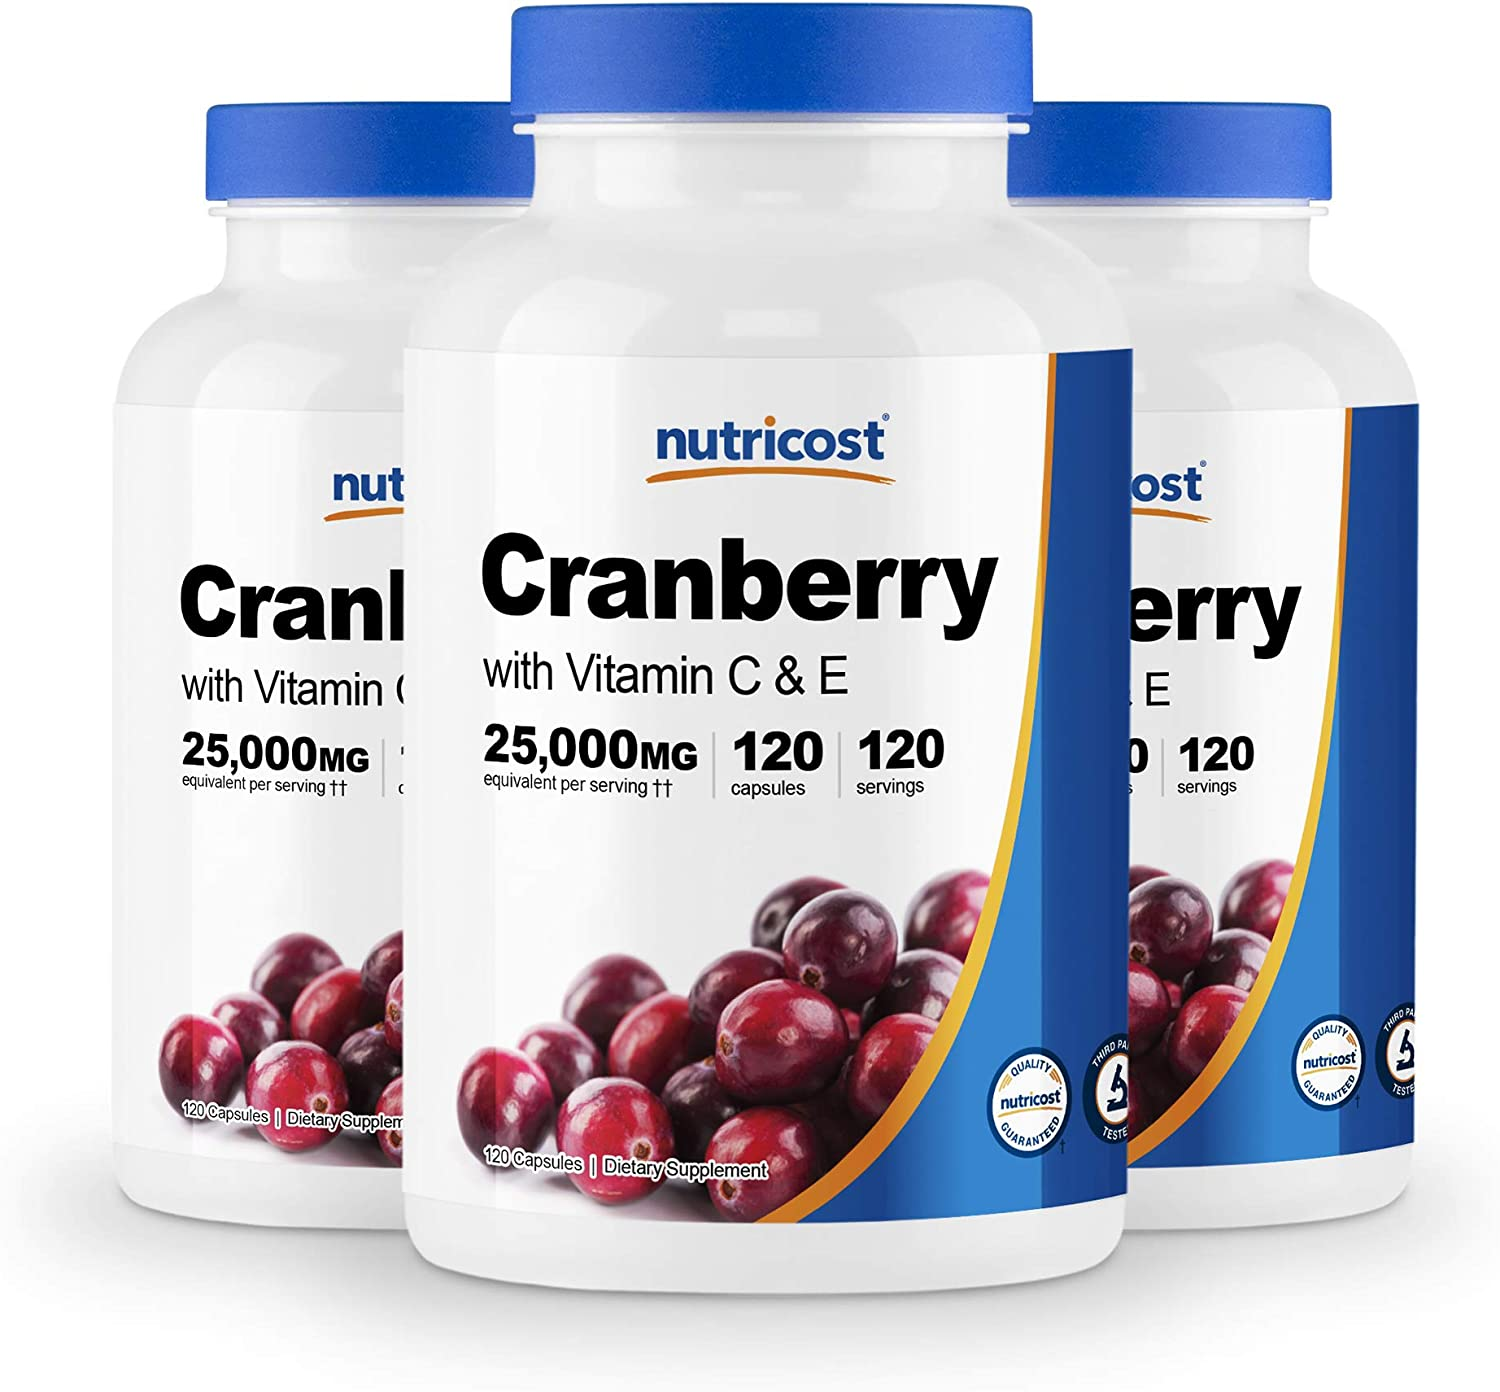 Nutricost Cranberry Extract 25,000mg (120 Servings) 3 Bottles with Vitamin C & E